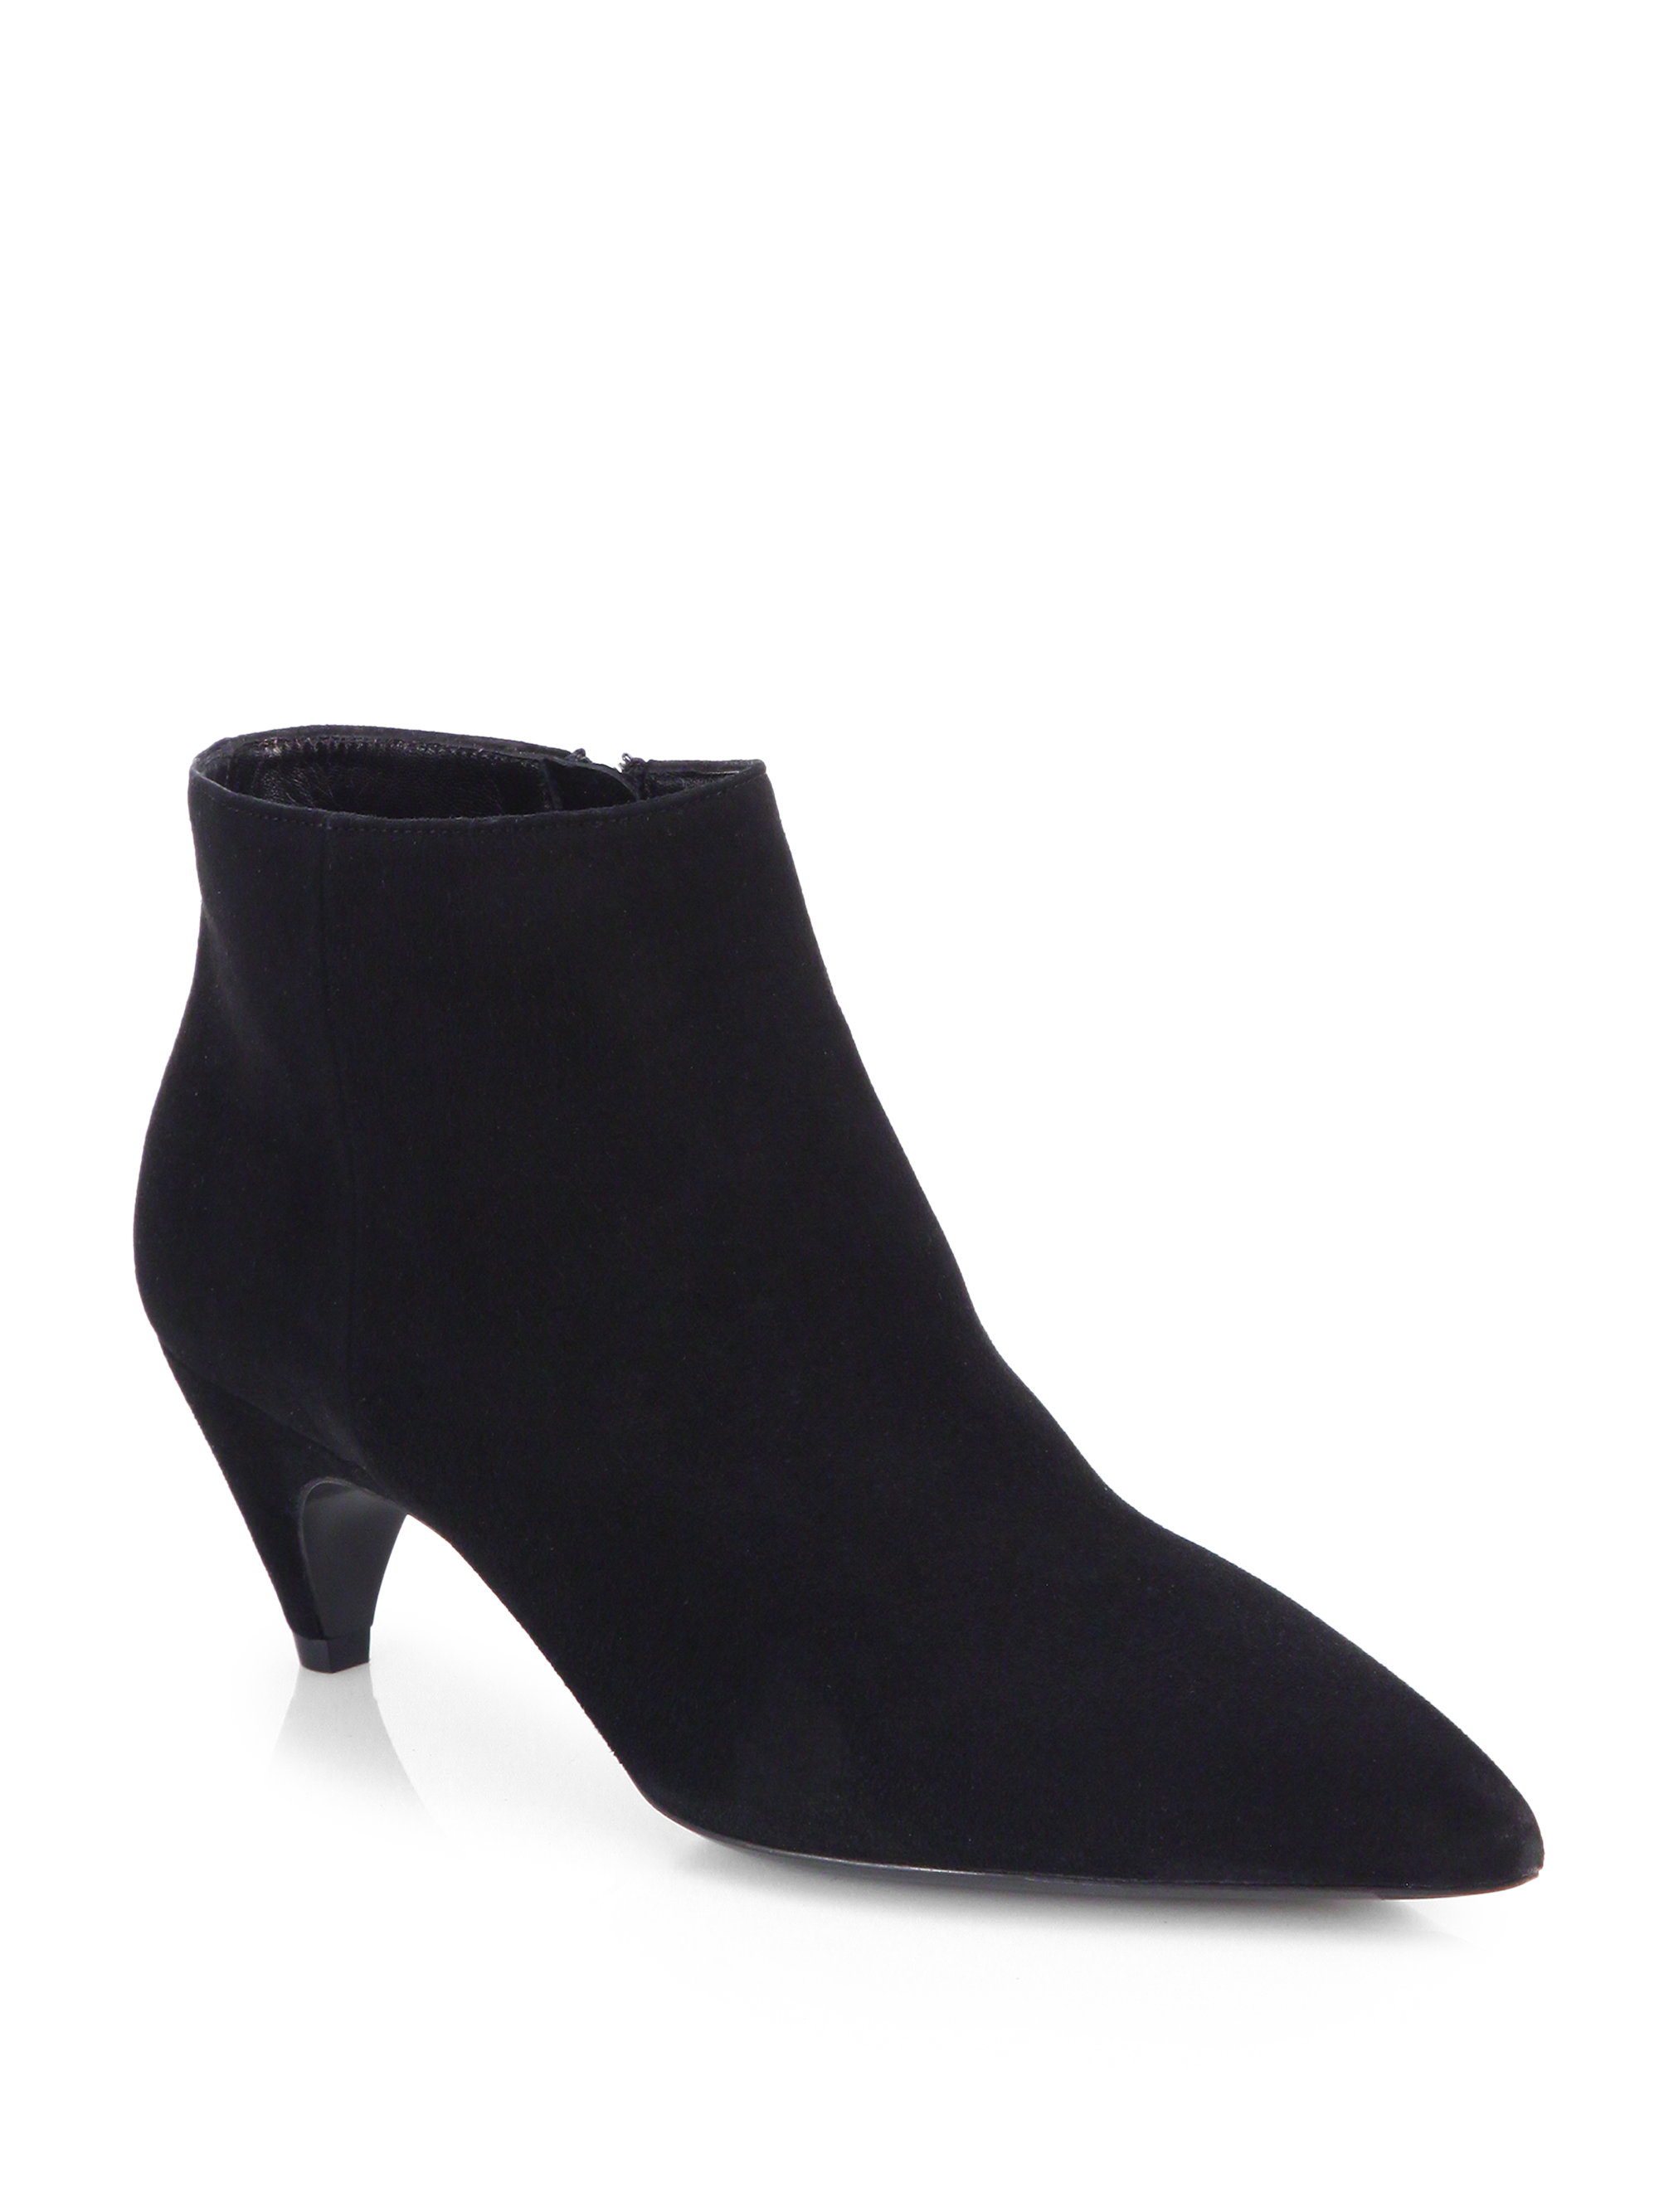 prada suede pointtoe ankle boots in black nero black lyst